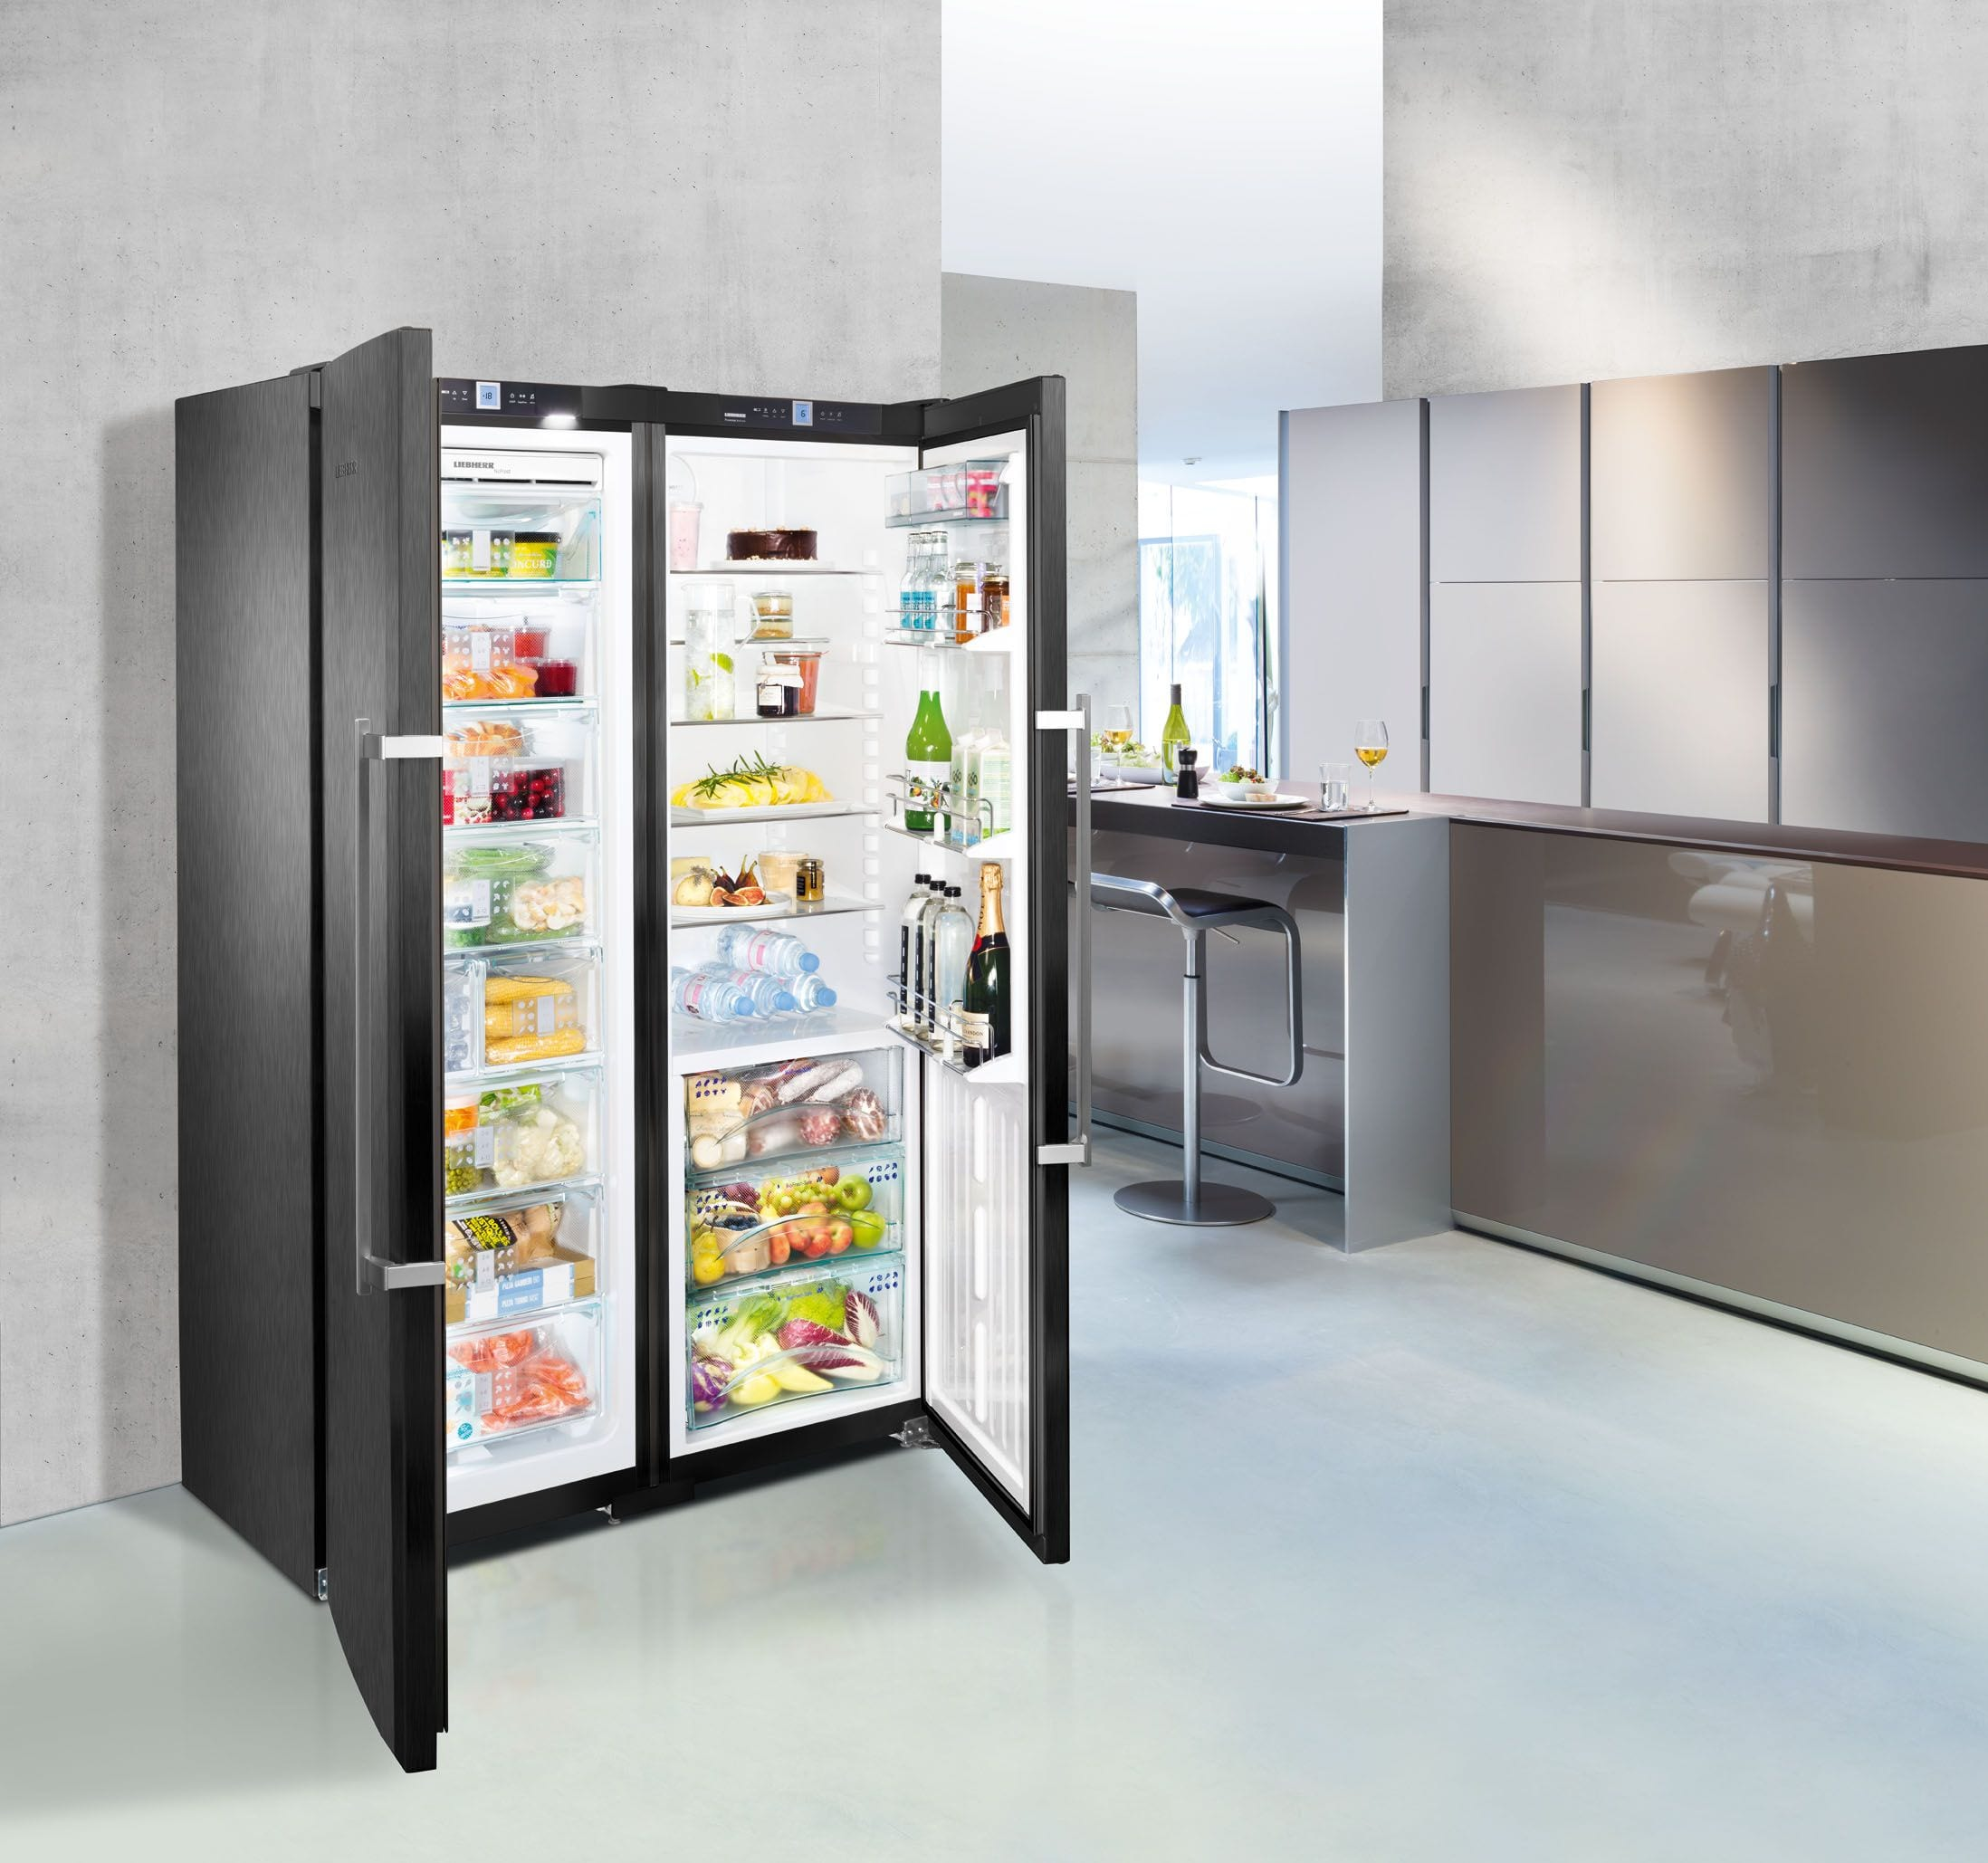 Is it worth investing in freezer cabinets, or is it better to limit to refrigerated cabinets 89